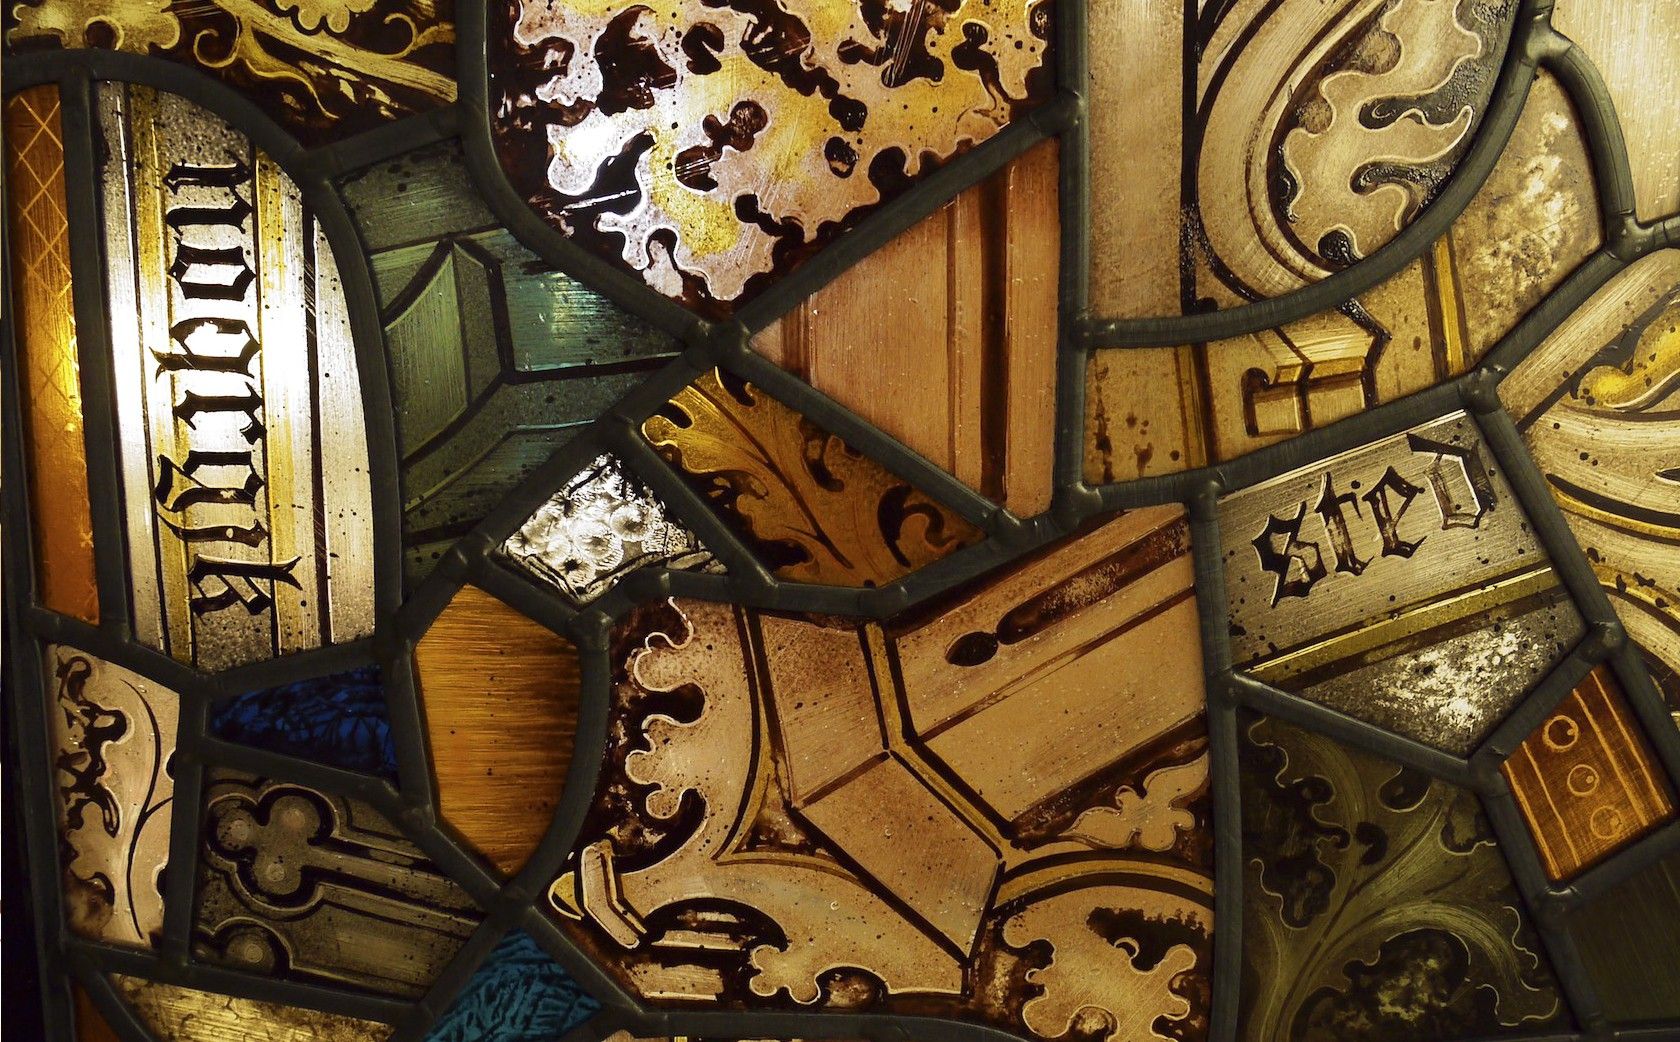 'Fragments' stained glass windows